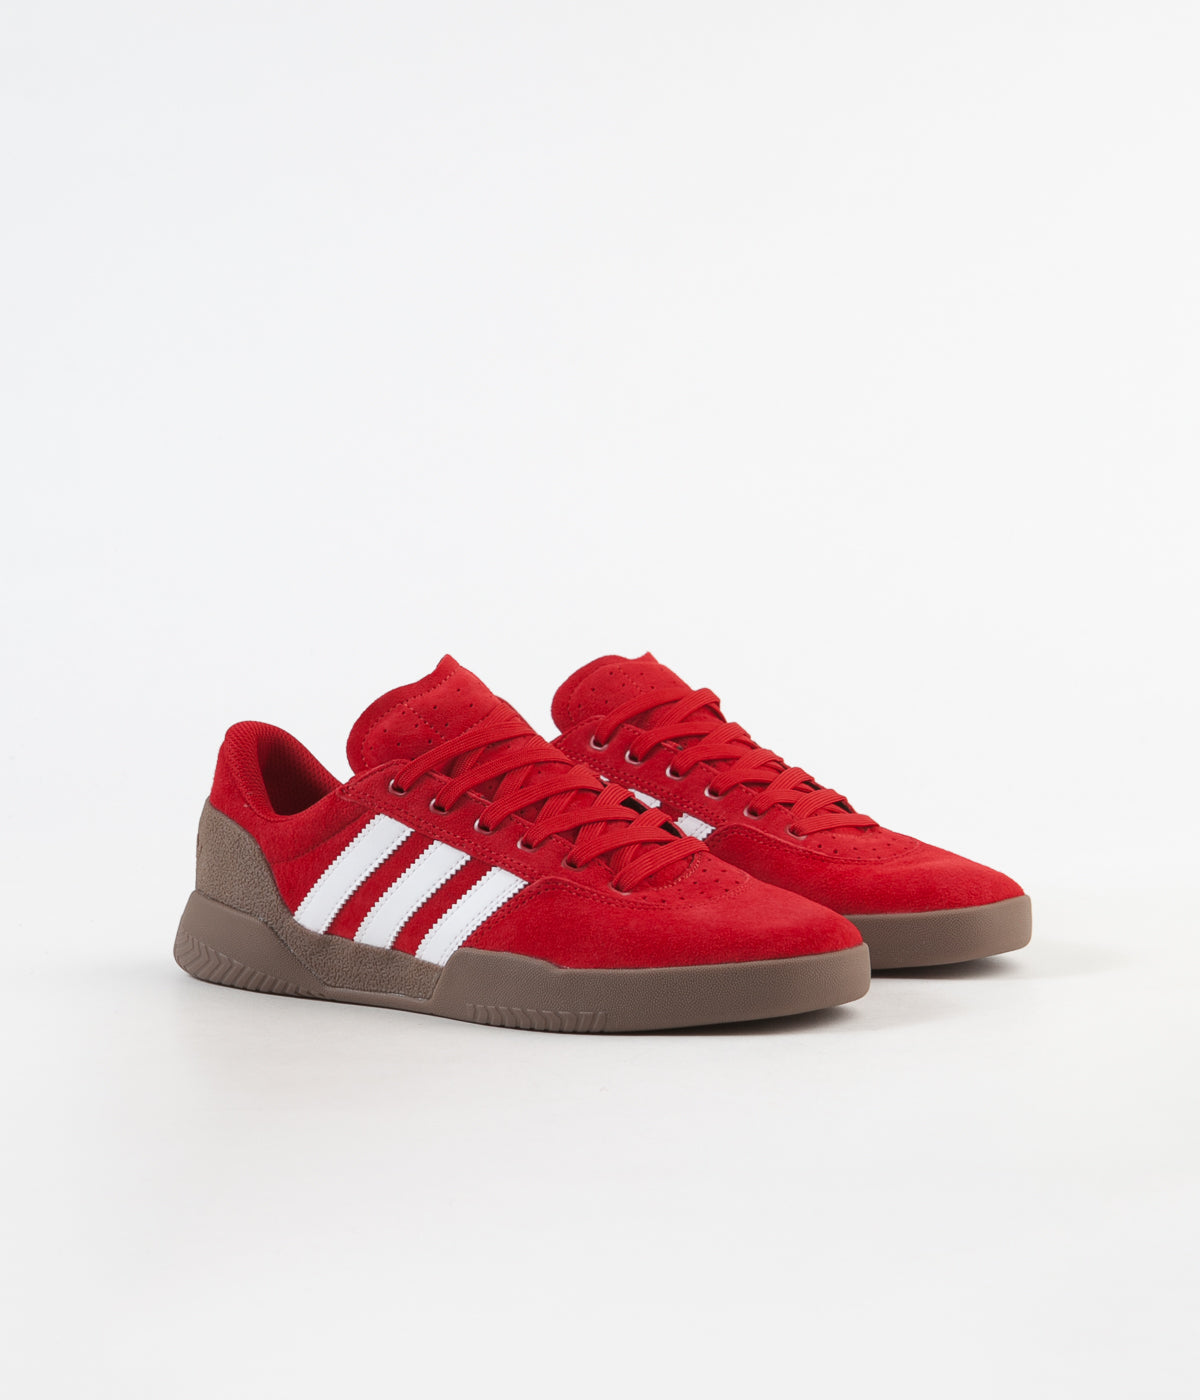 adidas city cup shoes online -